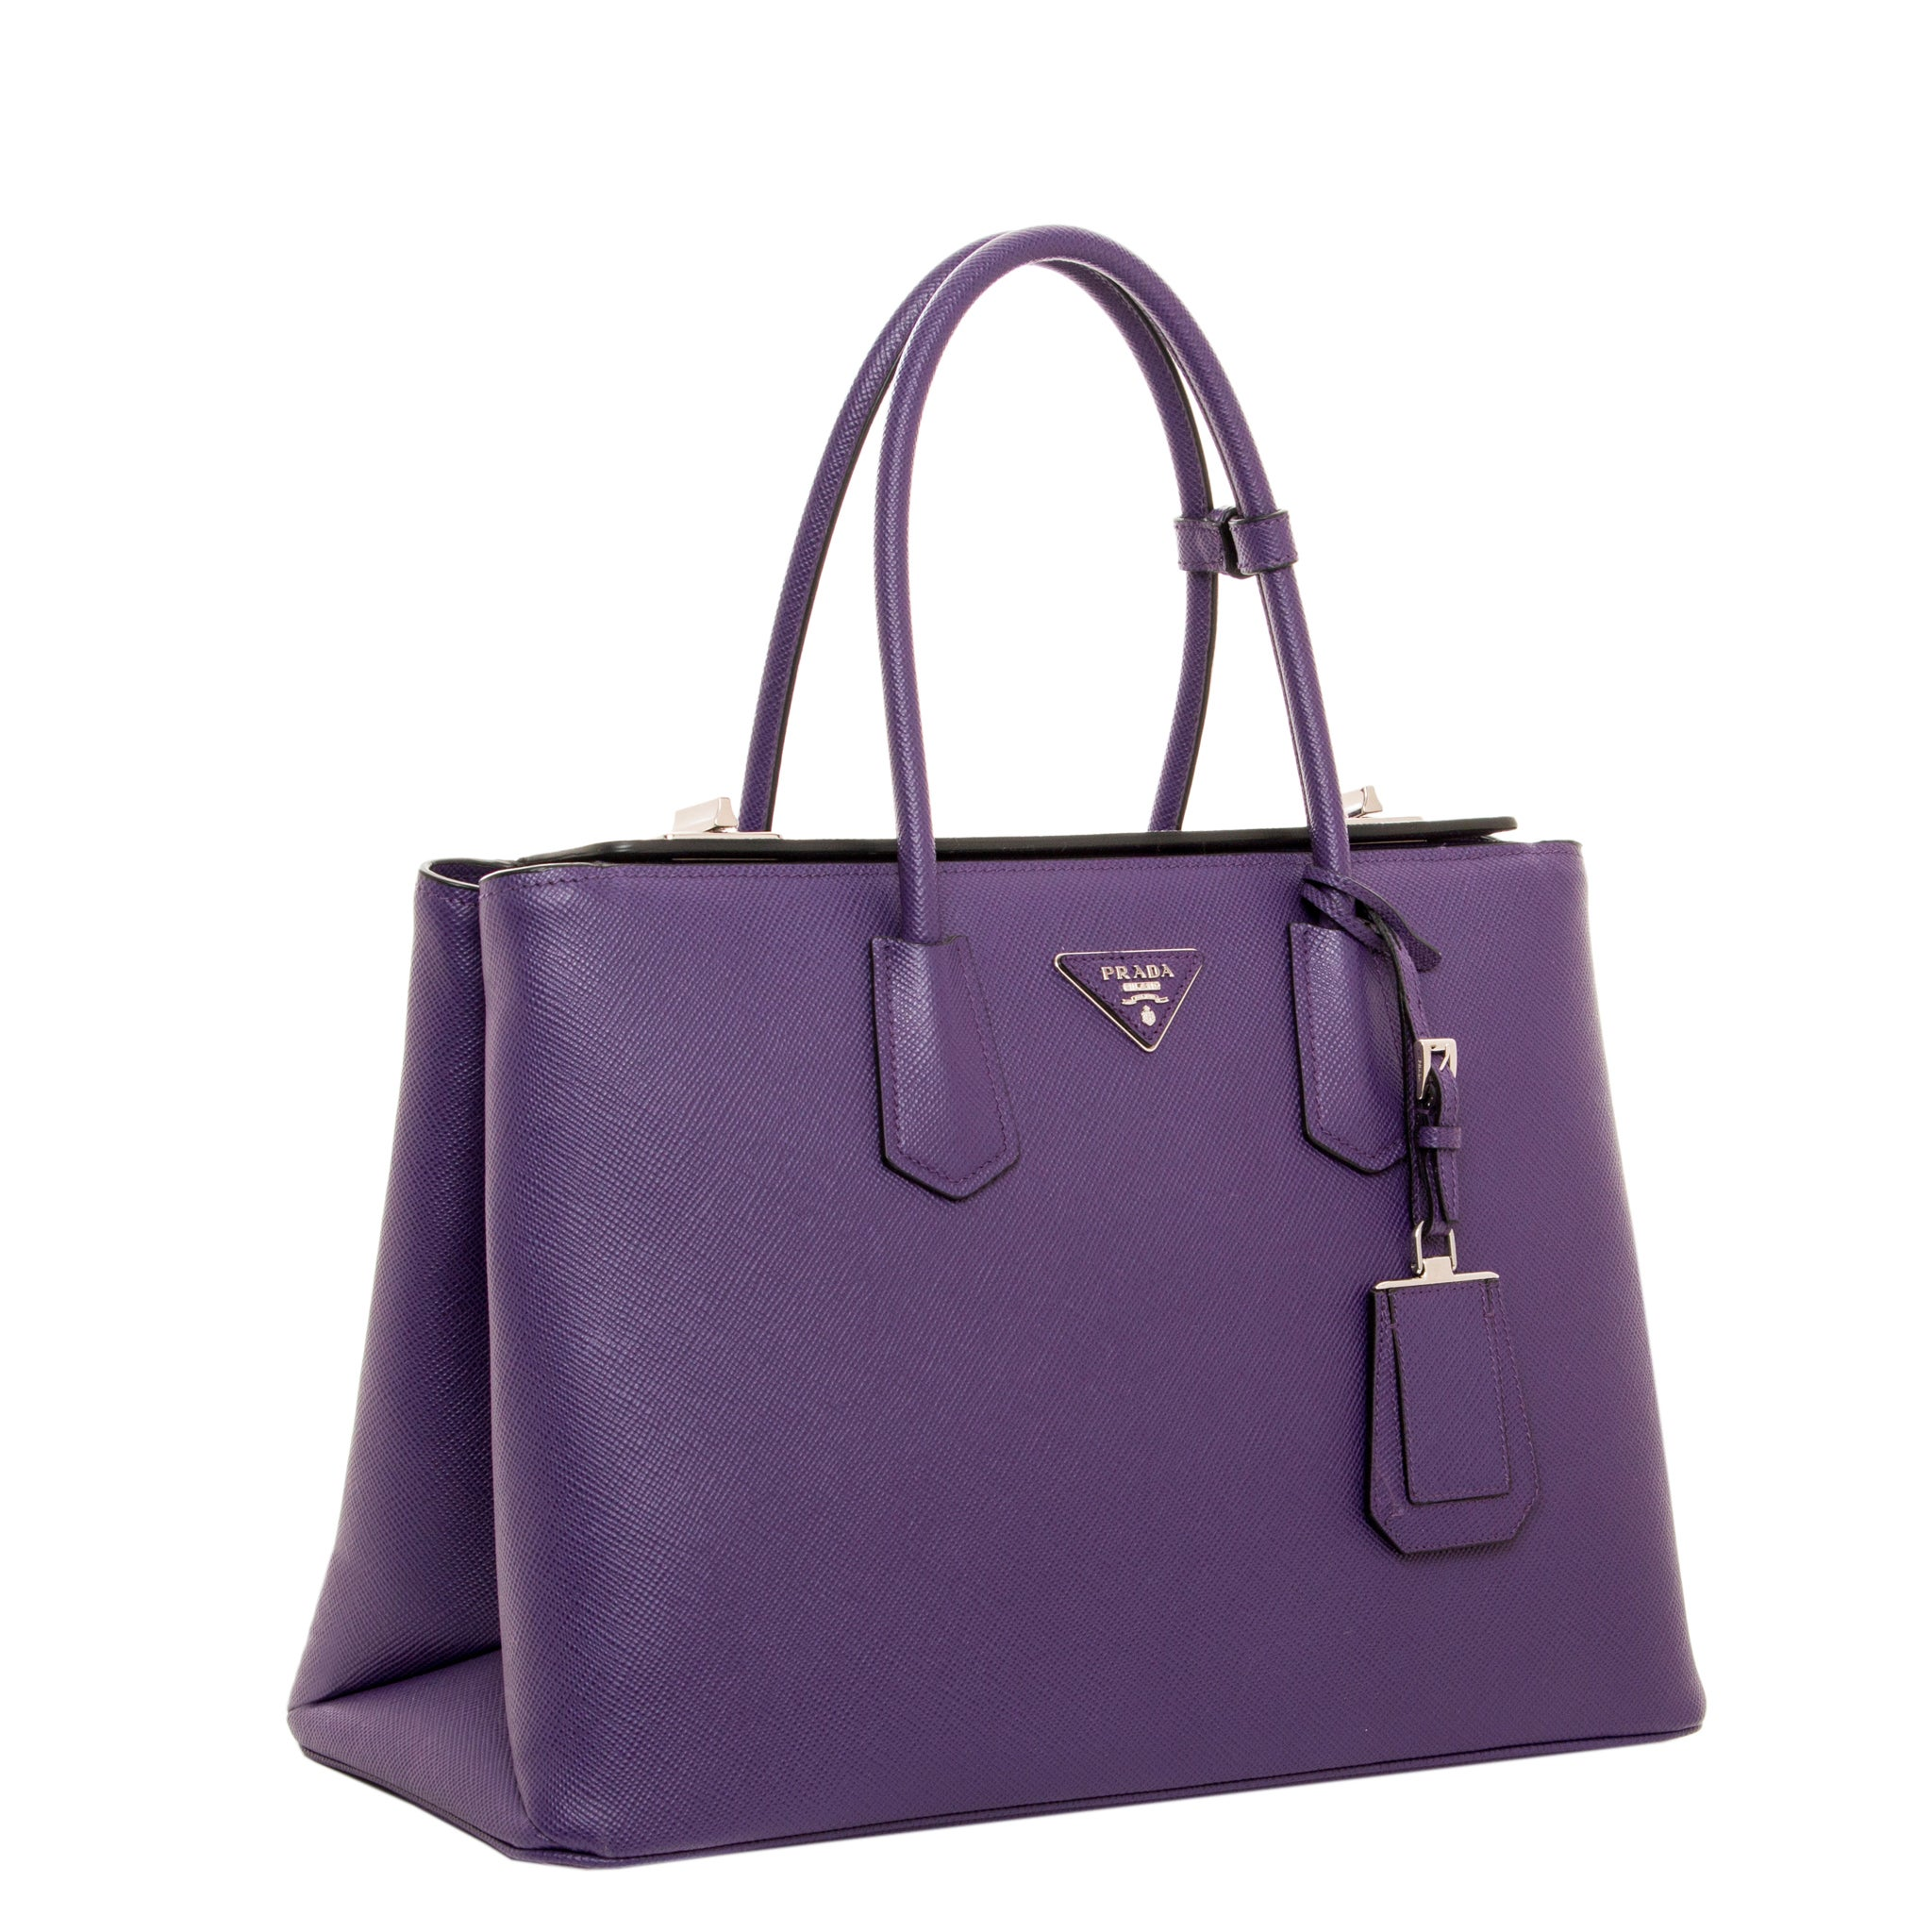 d5a3f441f8bc0a Shop Prada Large City Calf Turn-Lock Twin Bag - Free Shipping Today -  Overstock.com - 10123052